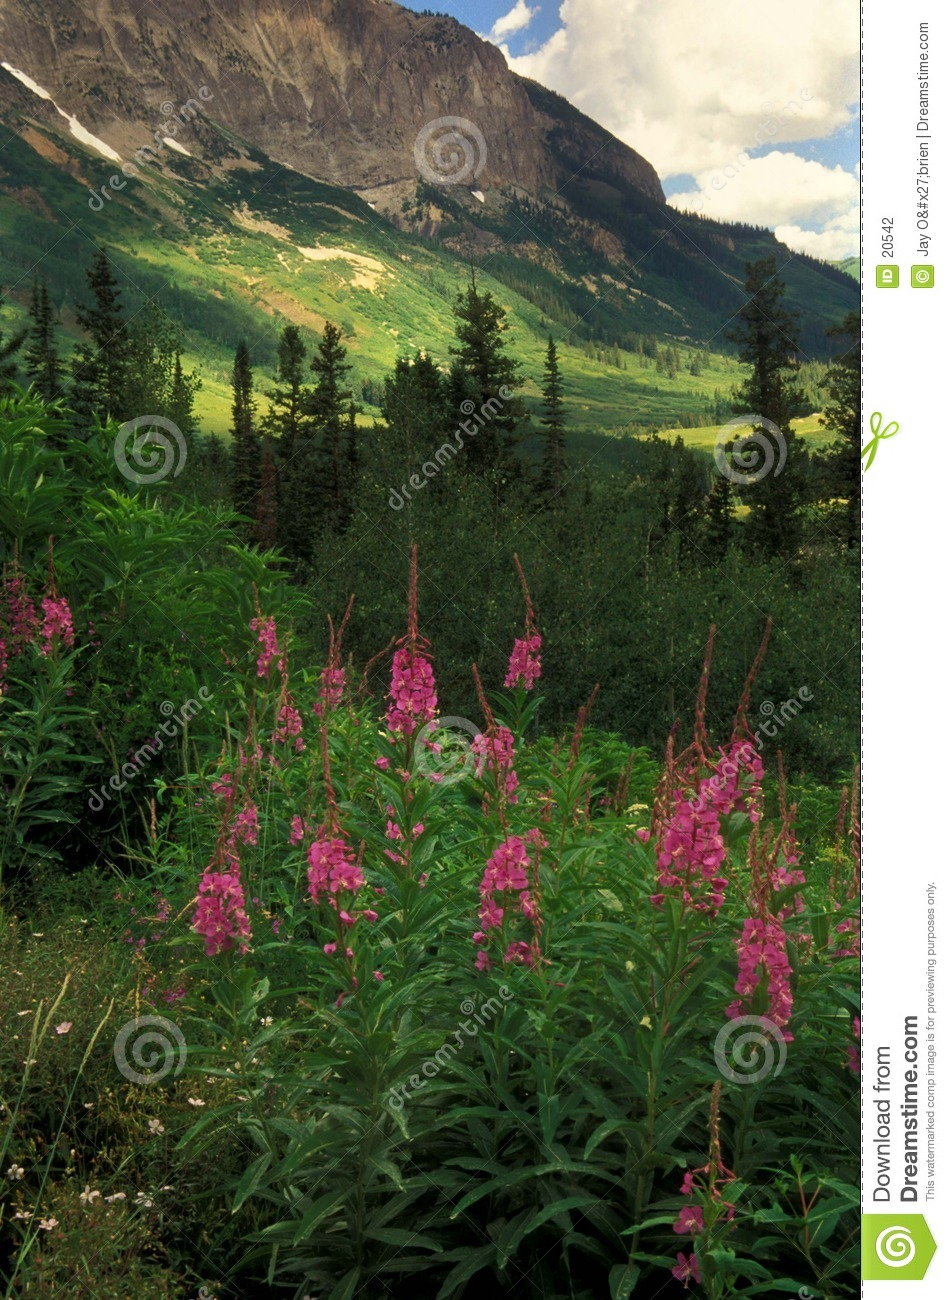 Fireweed & mountain